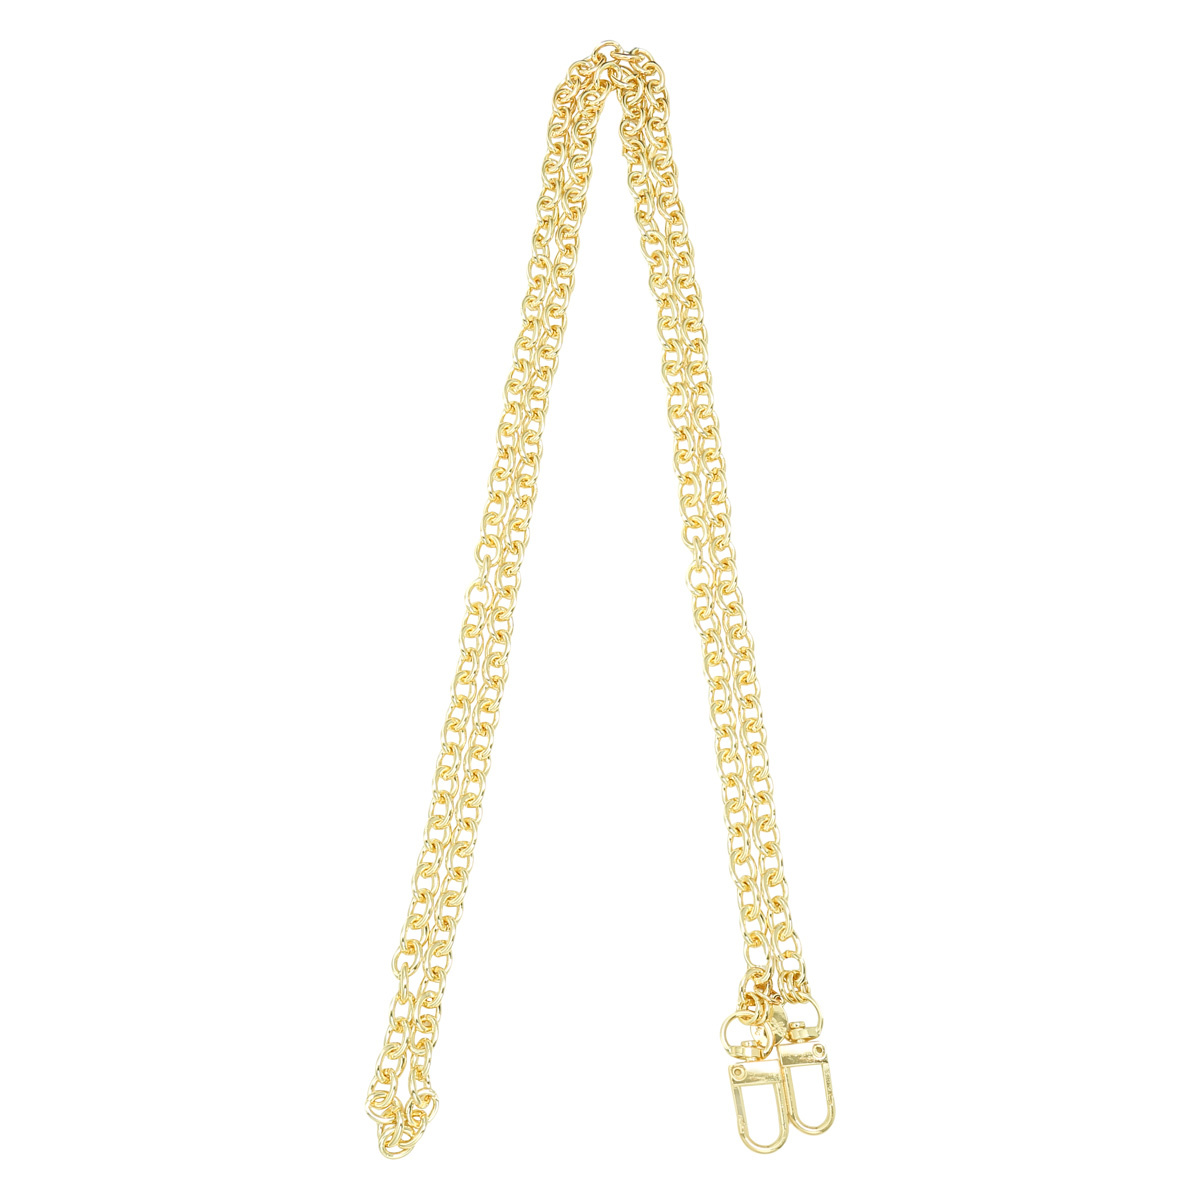 By Moise Phone necklace gold chain